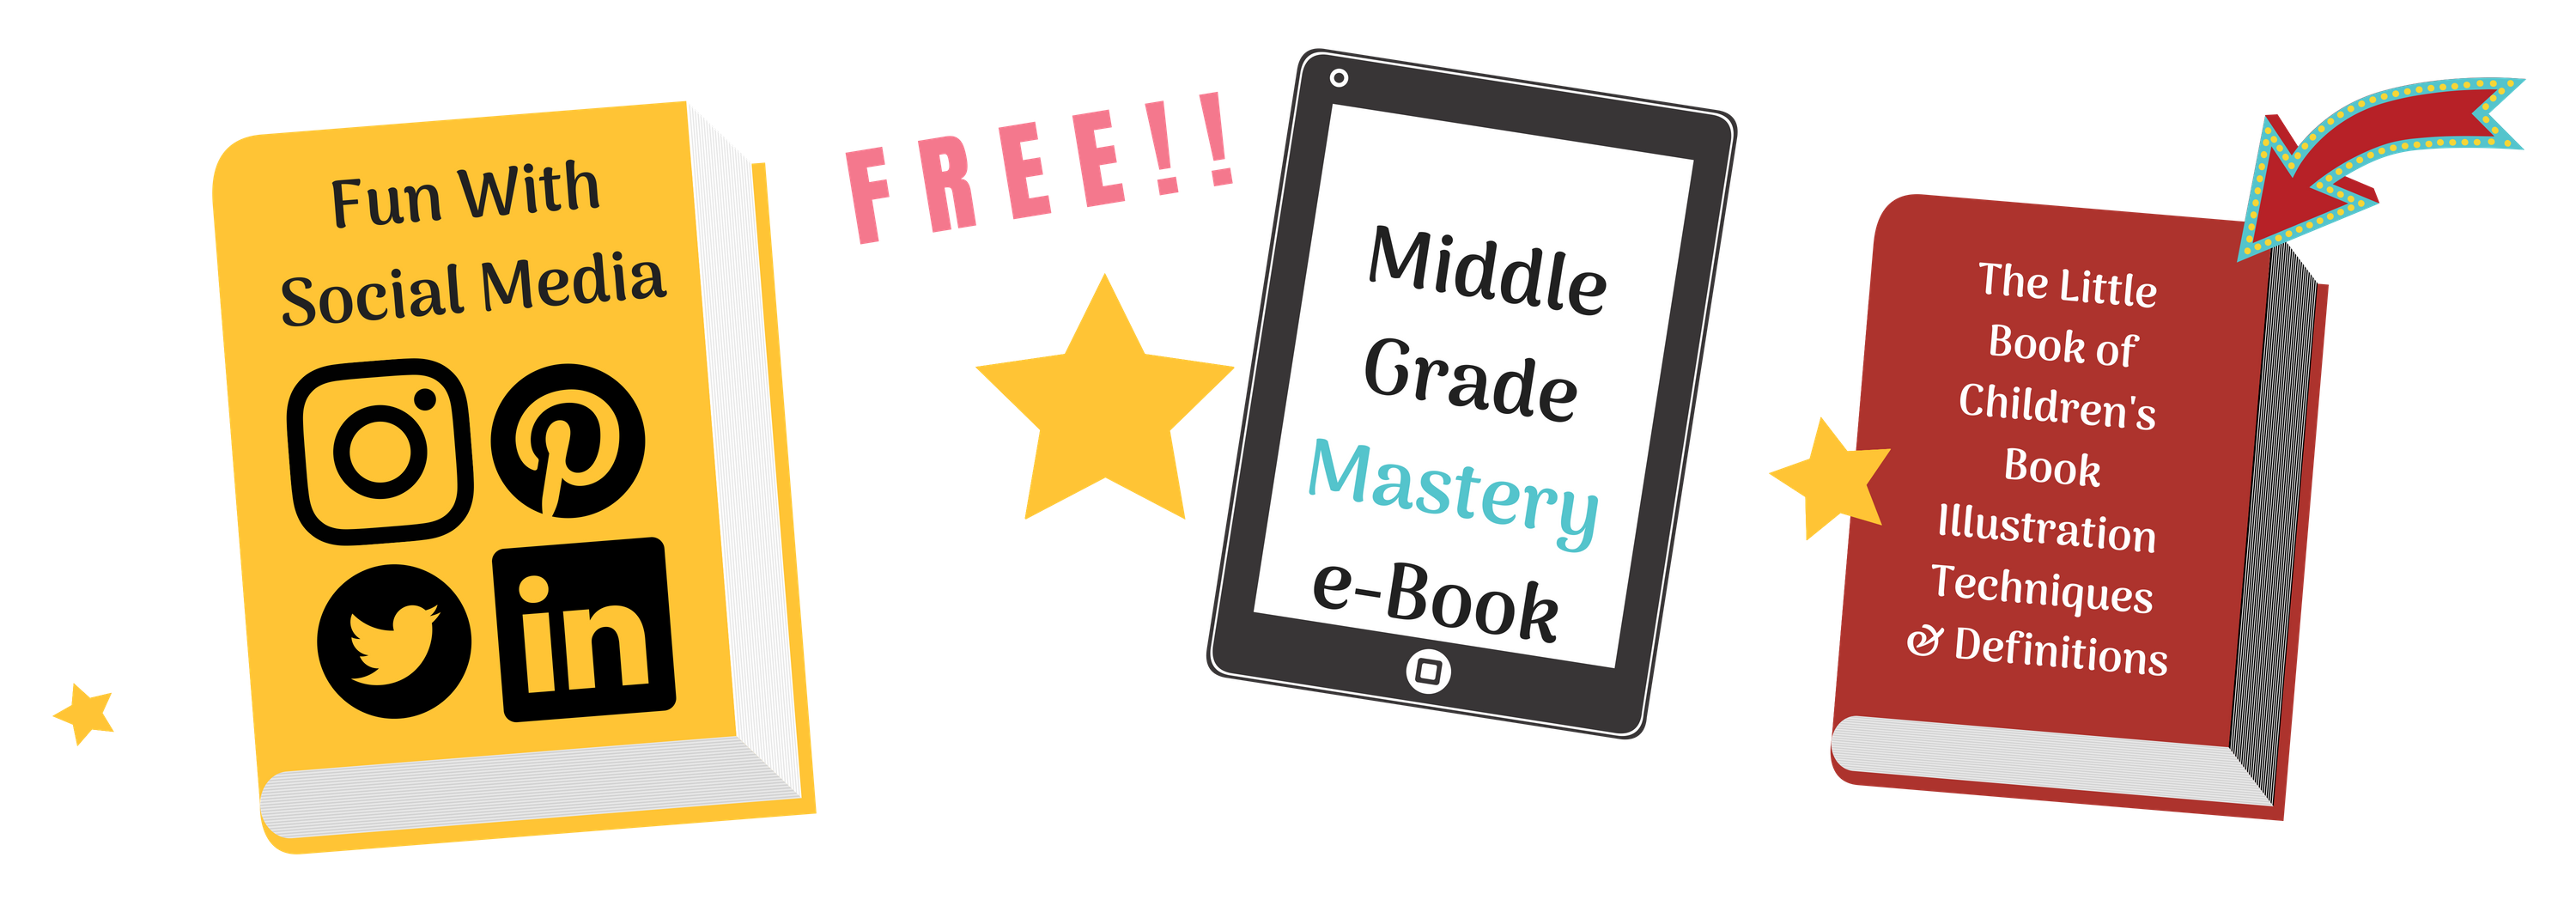 Middle Grade Mastery Bonuses